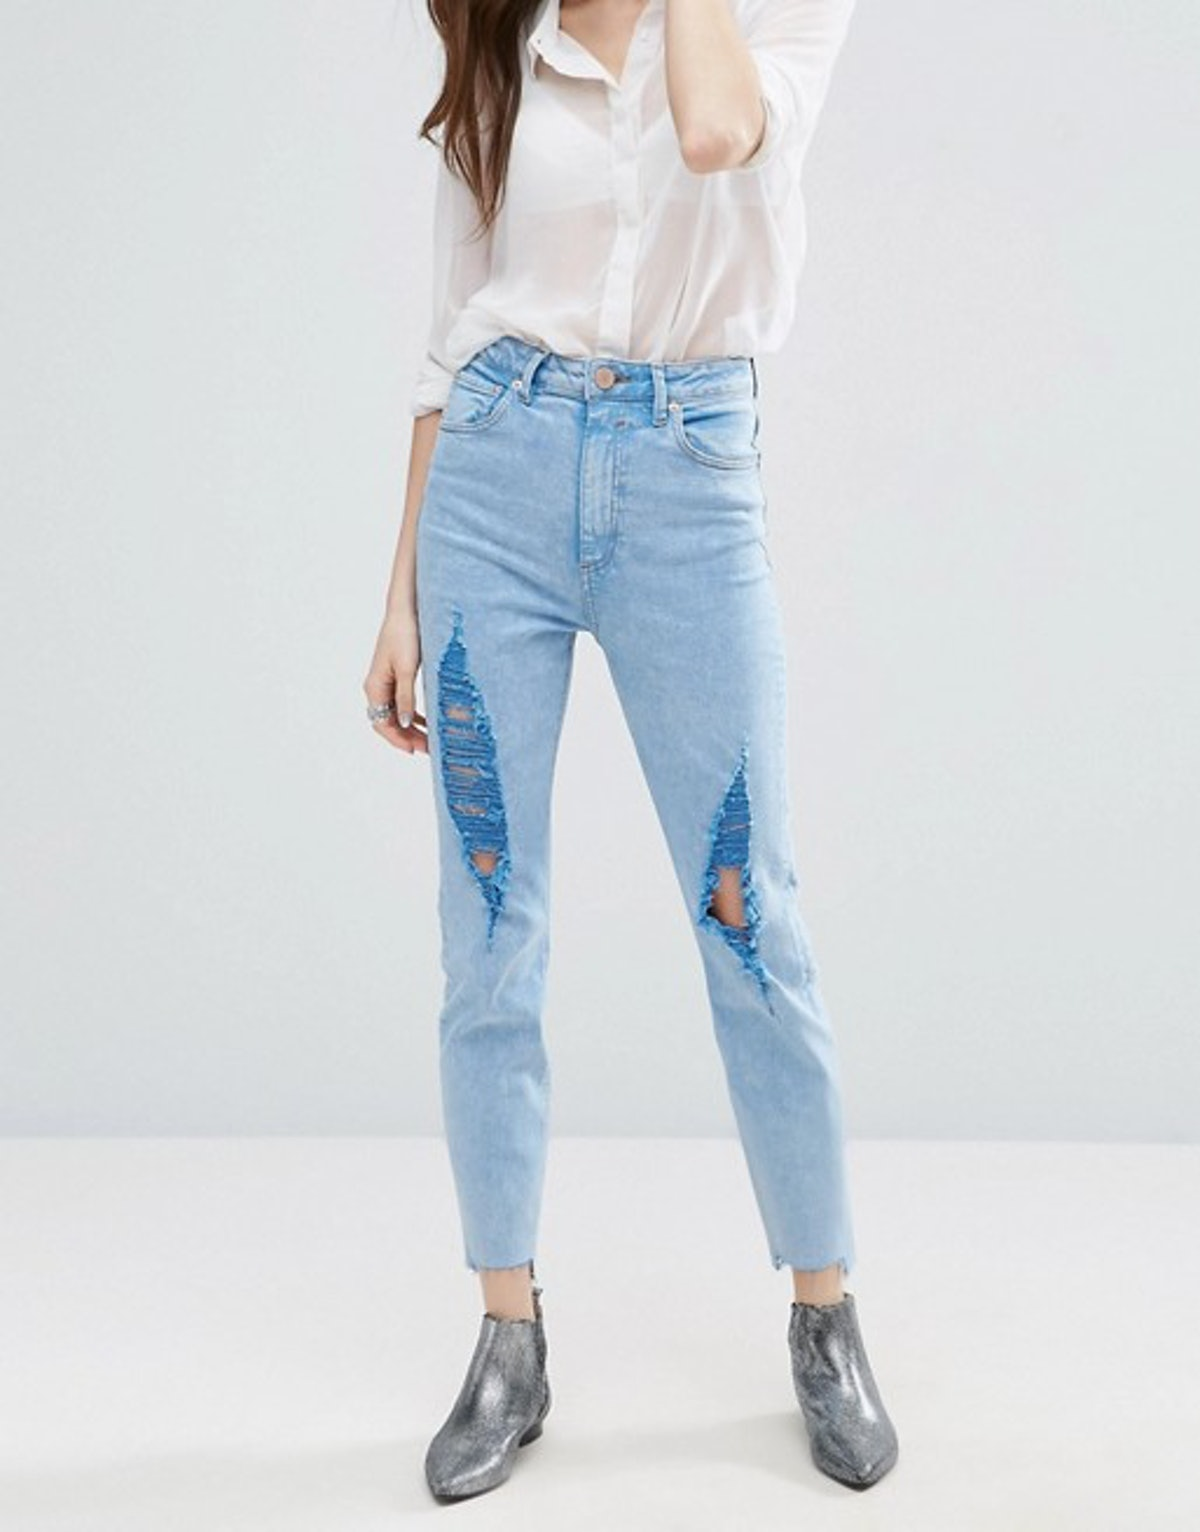 ASOS FARLEIGH High Waist Slim Mom Jeans In Fran Light Mottled Wash with Super Busts and Stepped Hem